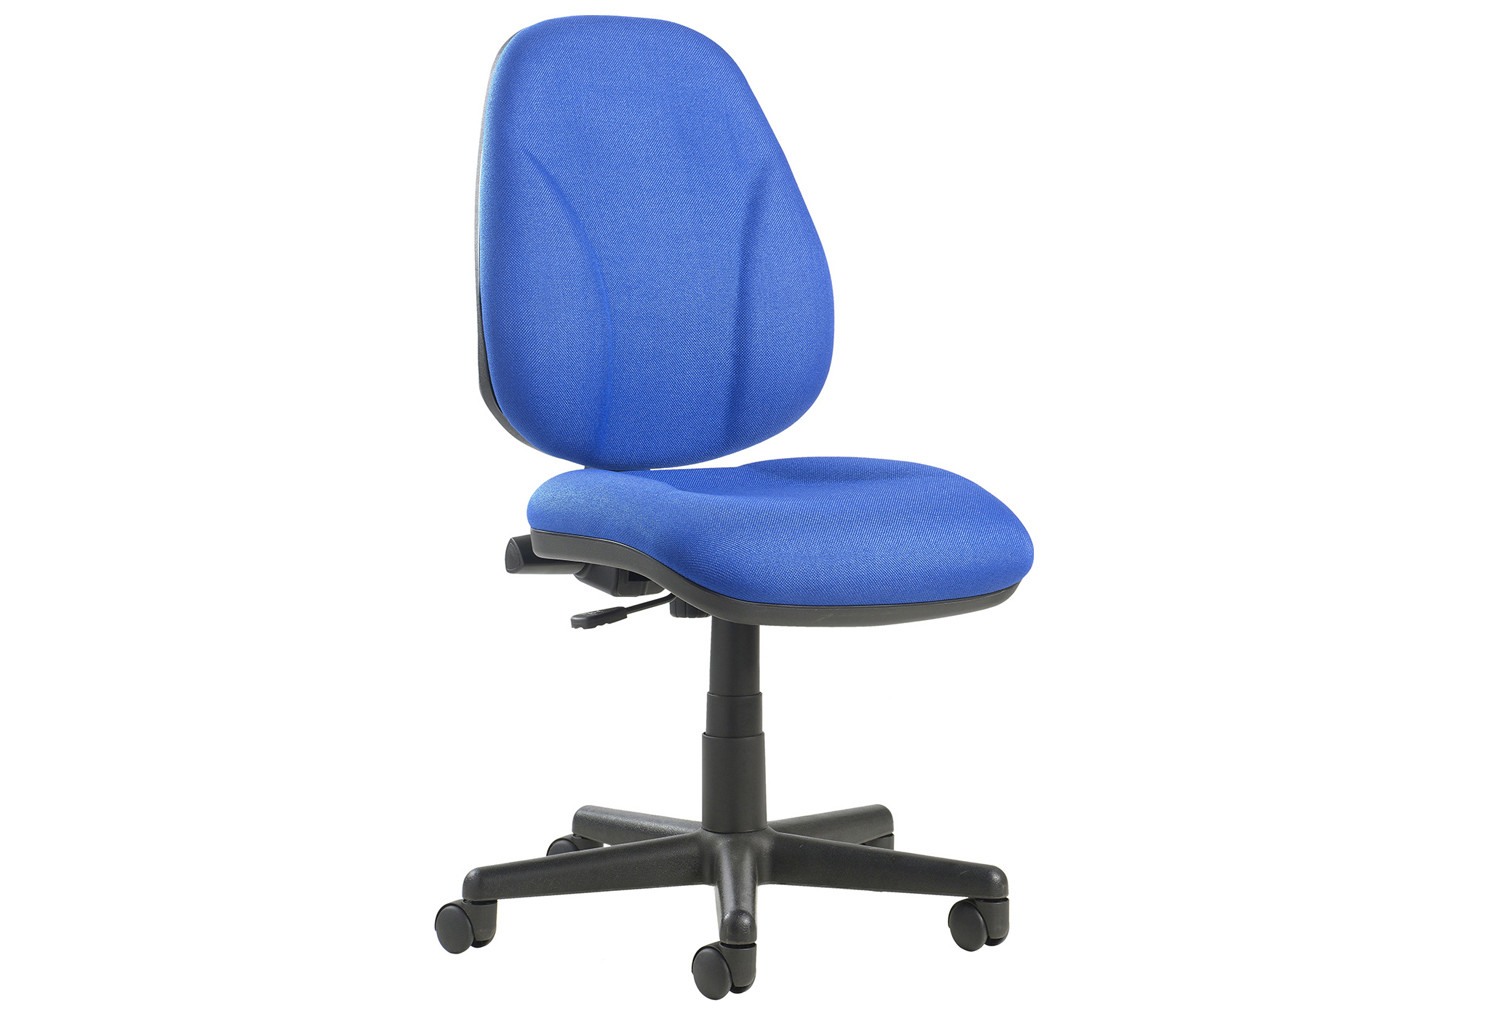 Full Lumbar 1 Lever Operator Chair No Arms